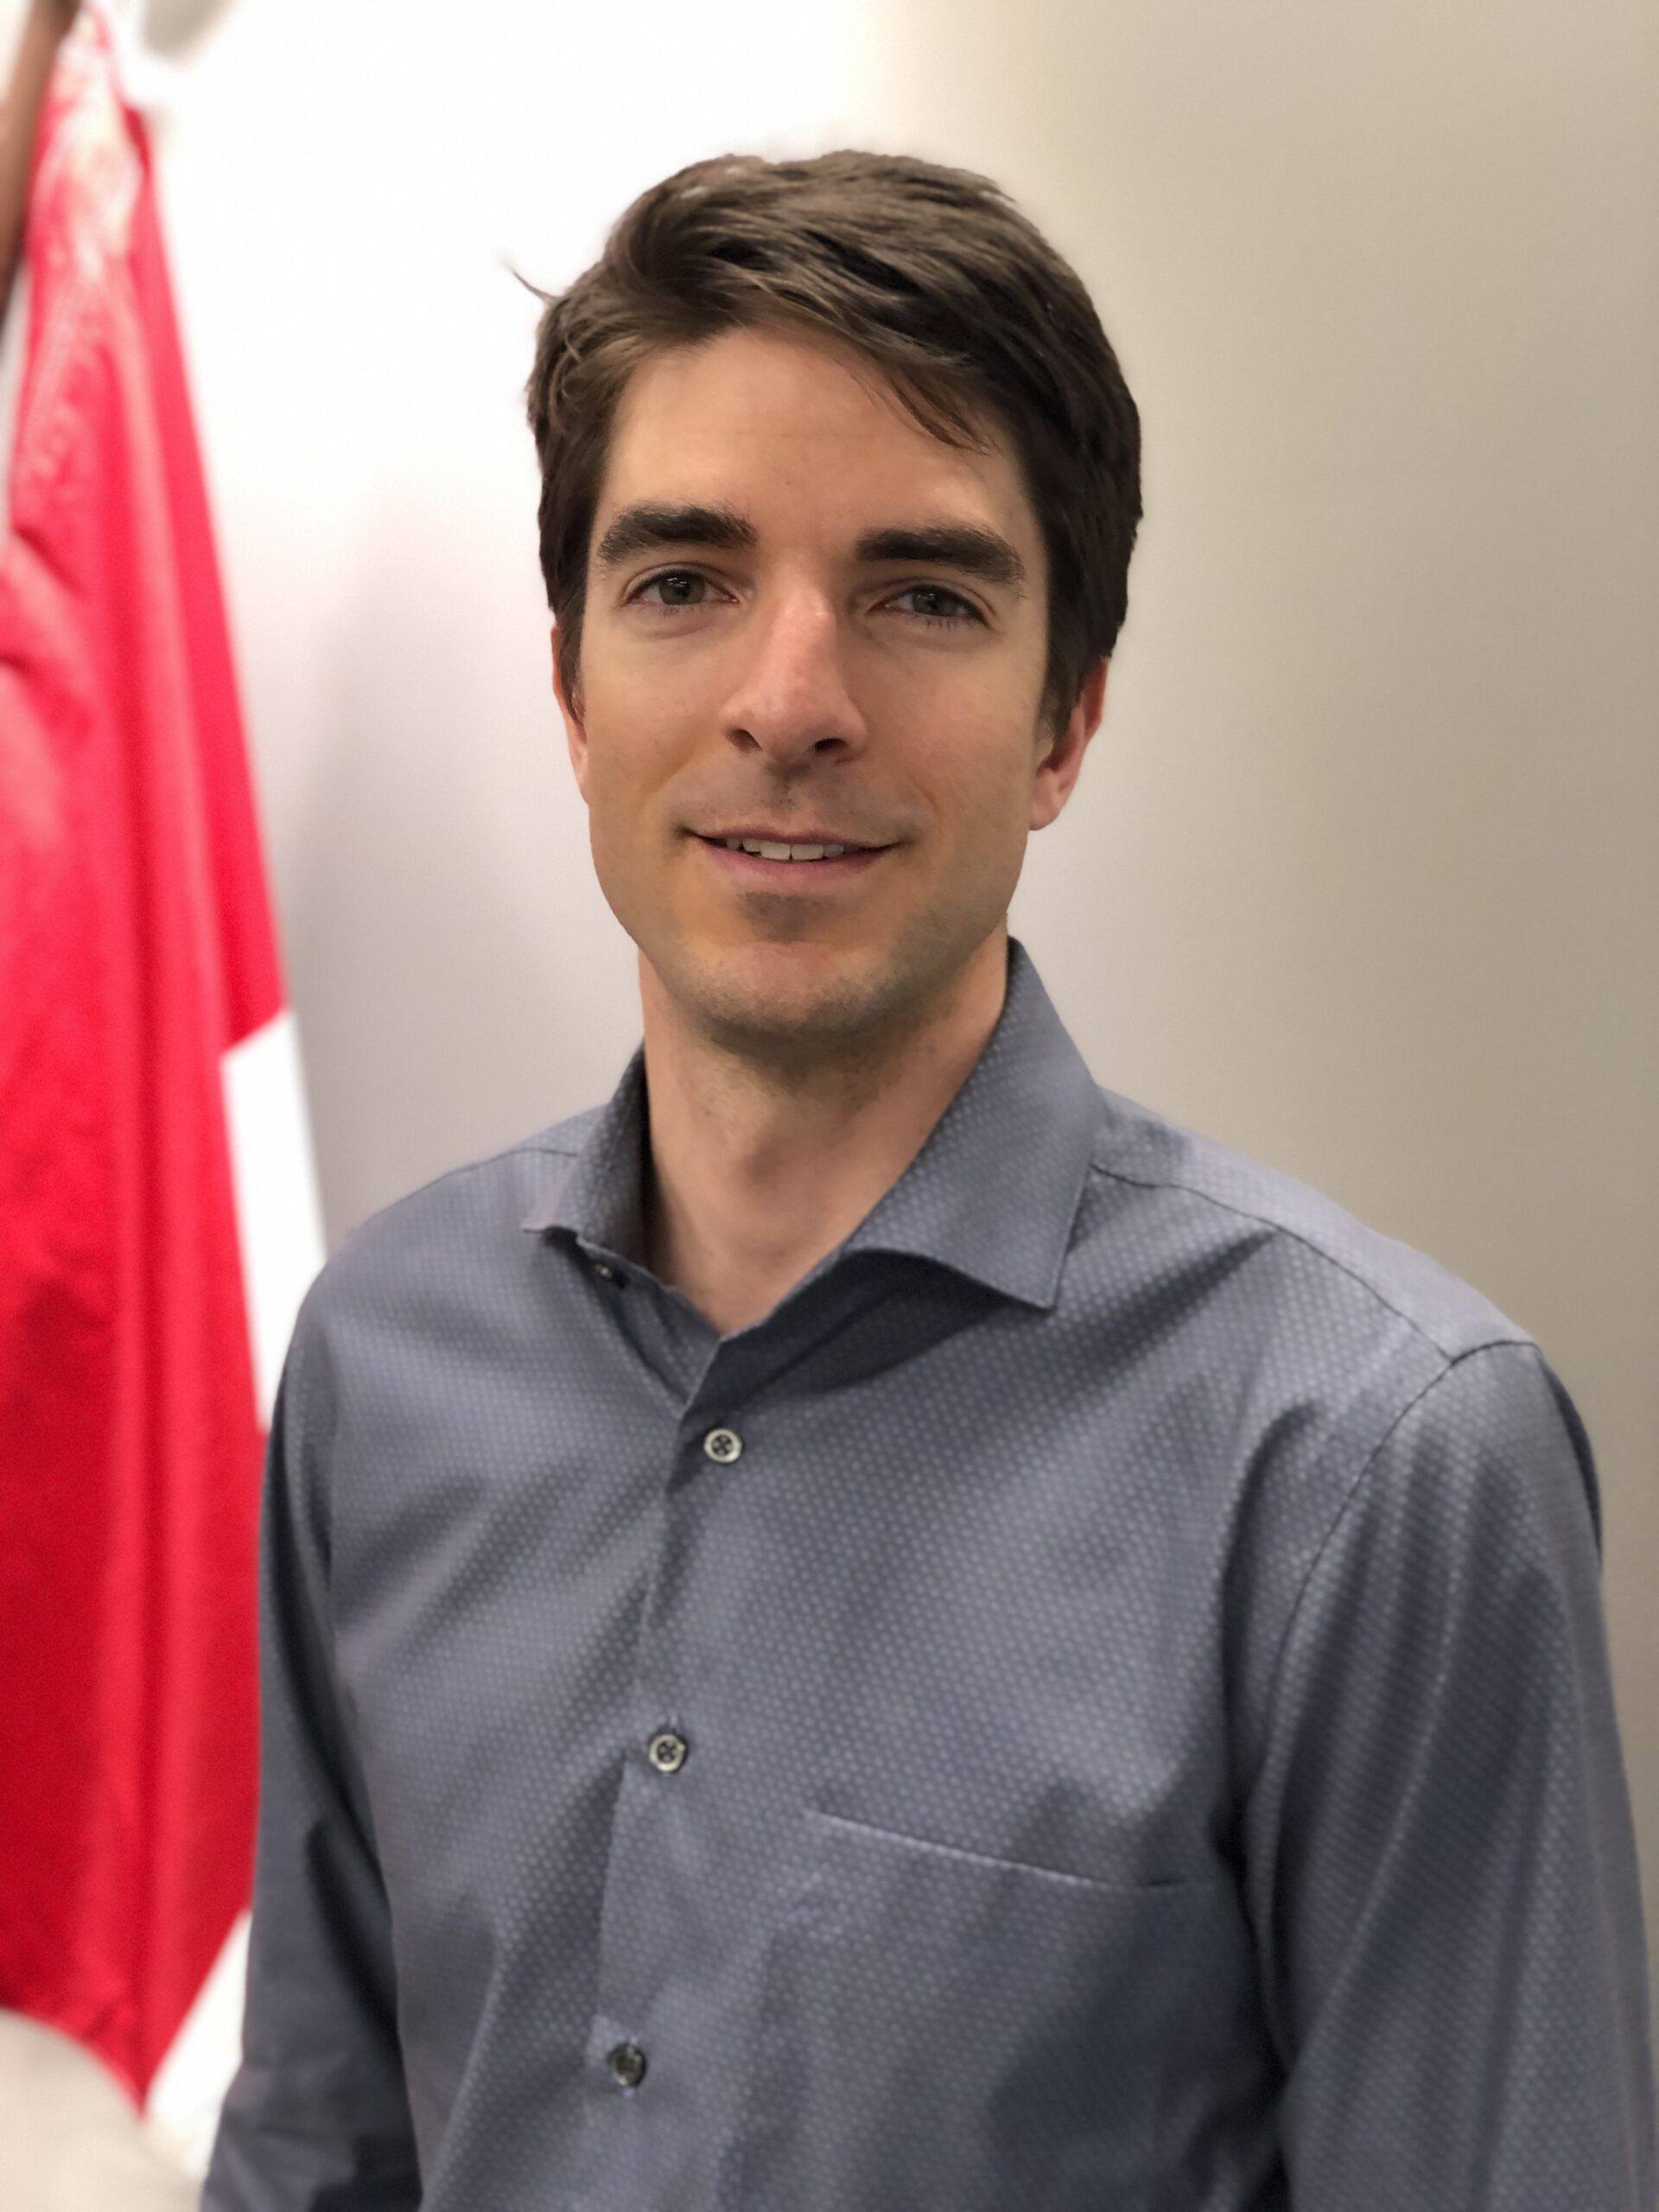 Mark Boltezar